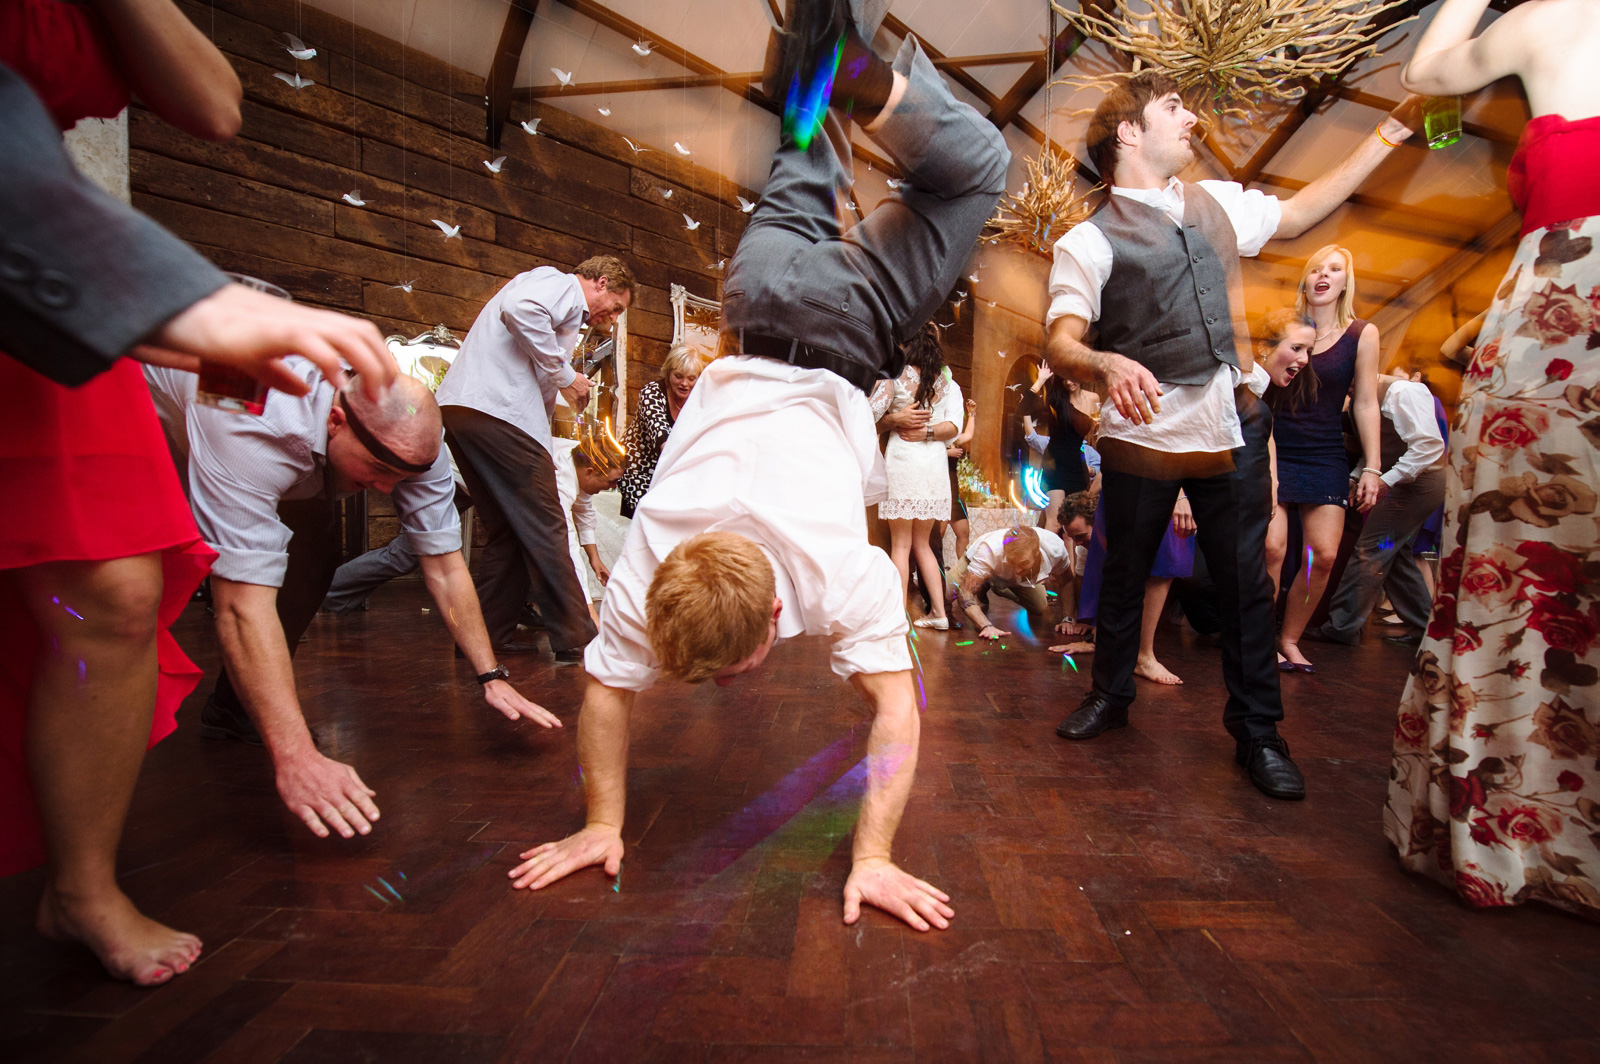 man doing handstand at a wedding